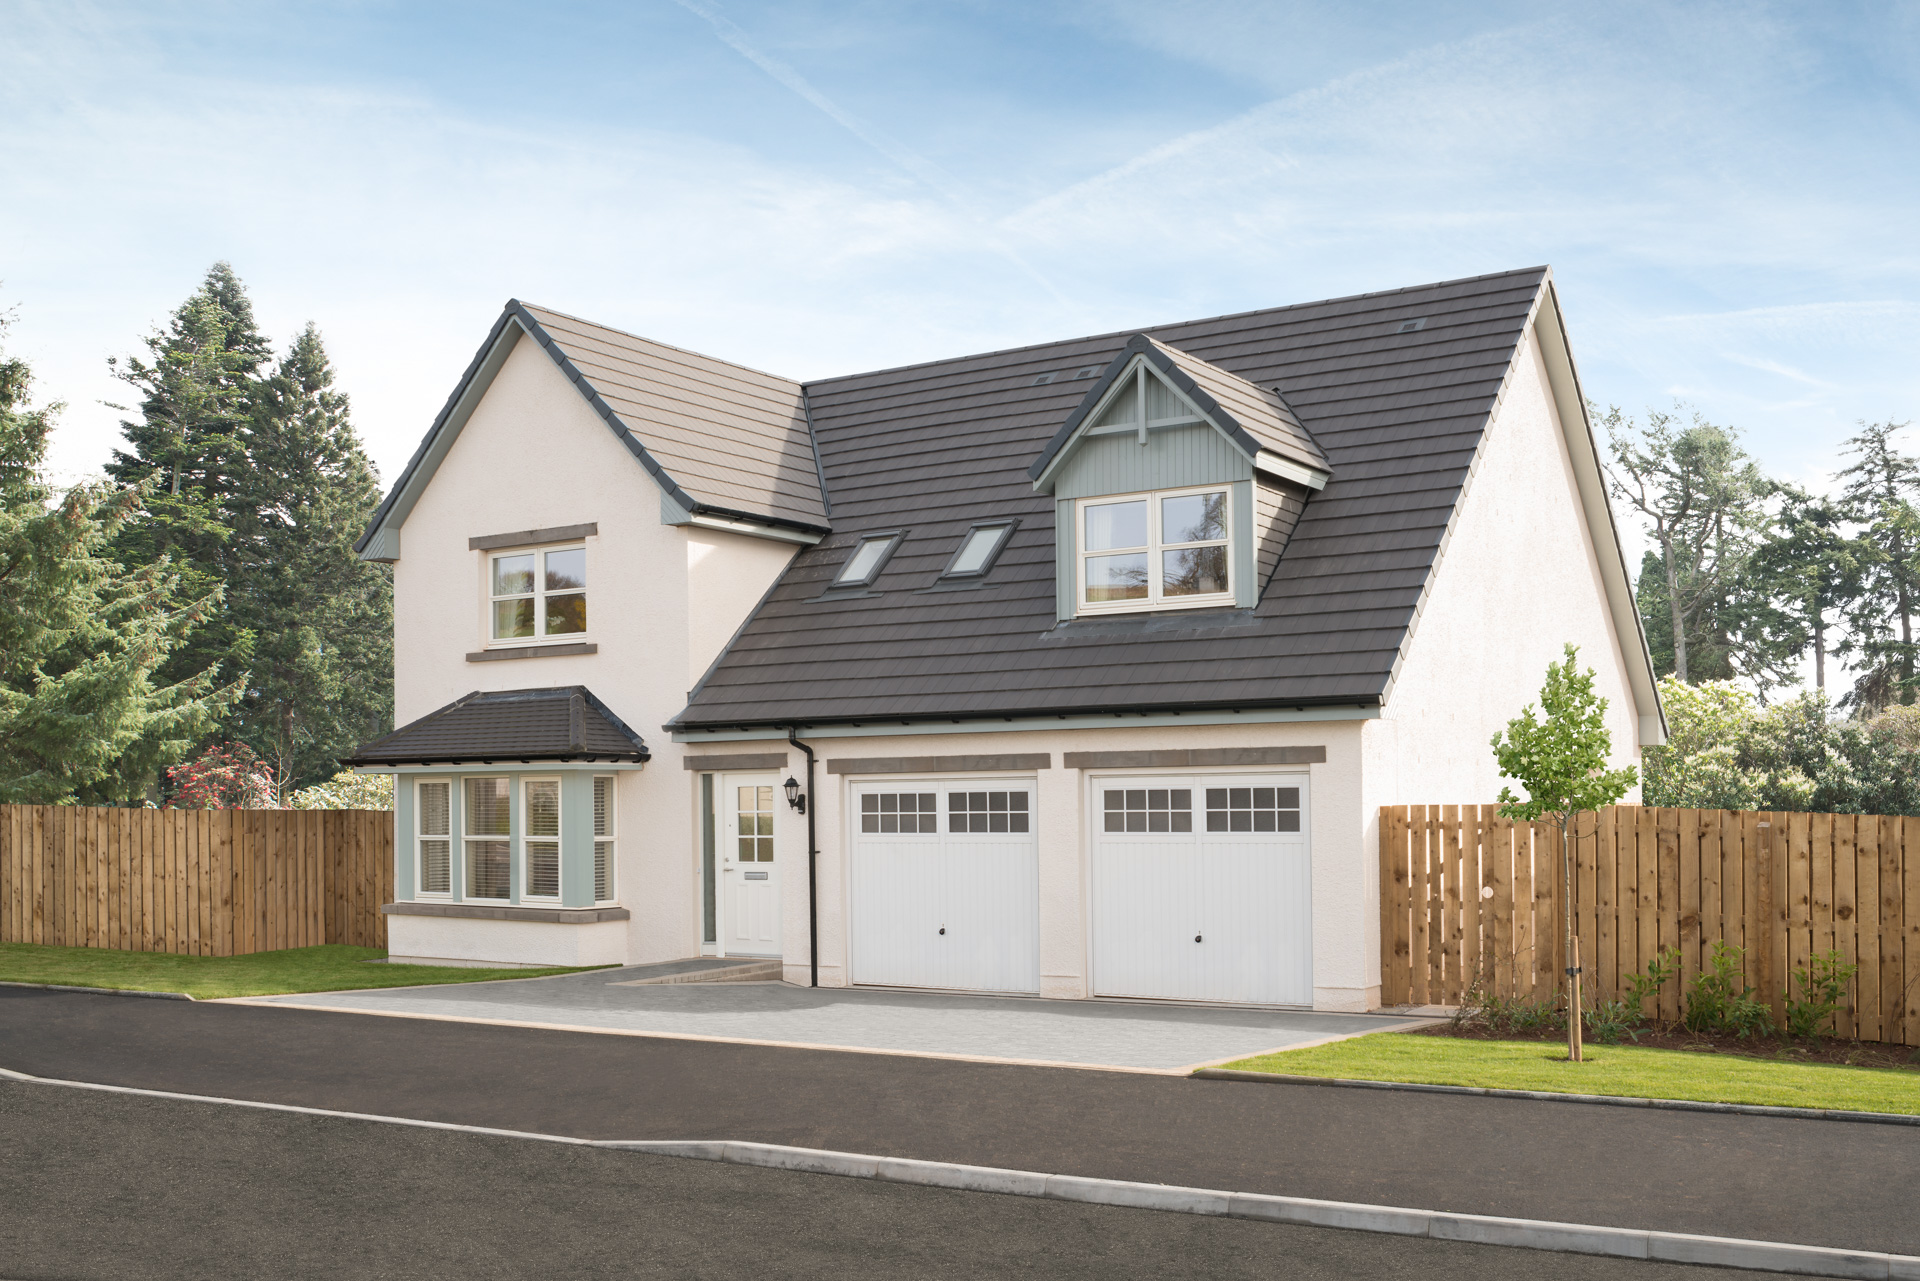 Plot 11 - The Marr - The Beeches